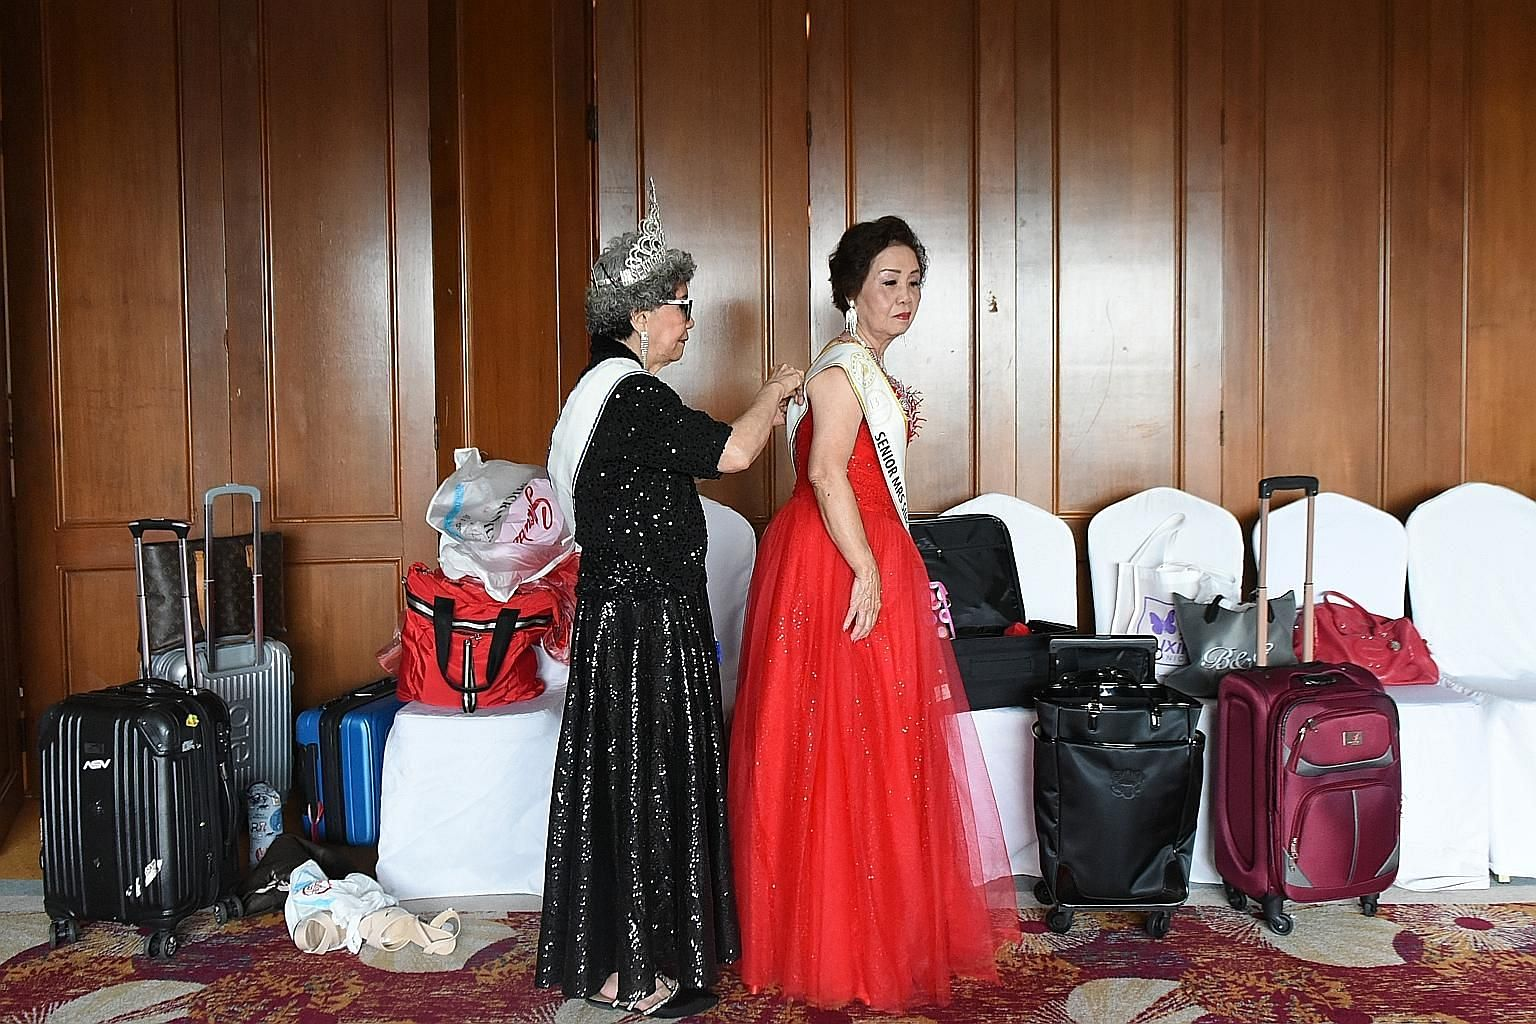 Last year's TKS Mrs Senior Singapore champion, Madam Teh Siew Peng (left), 77, helping Madam Kan Yuet Chee, 79, with her evening dress for a pre-pageant dinner at Orchid Country Club last Thursday, the night before the finale. Madam Kan dancing with